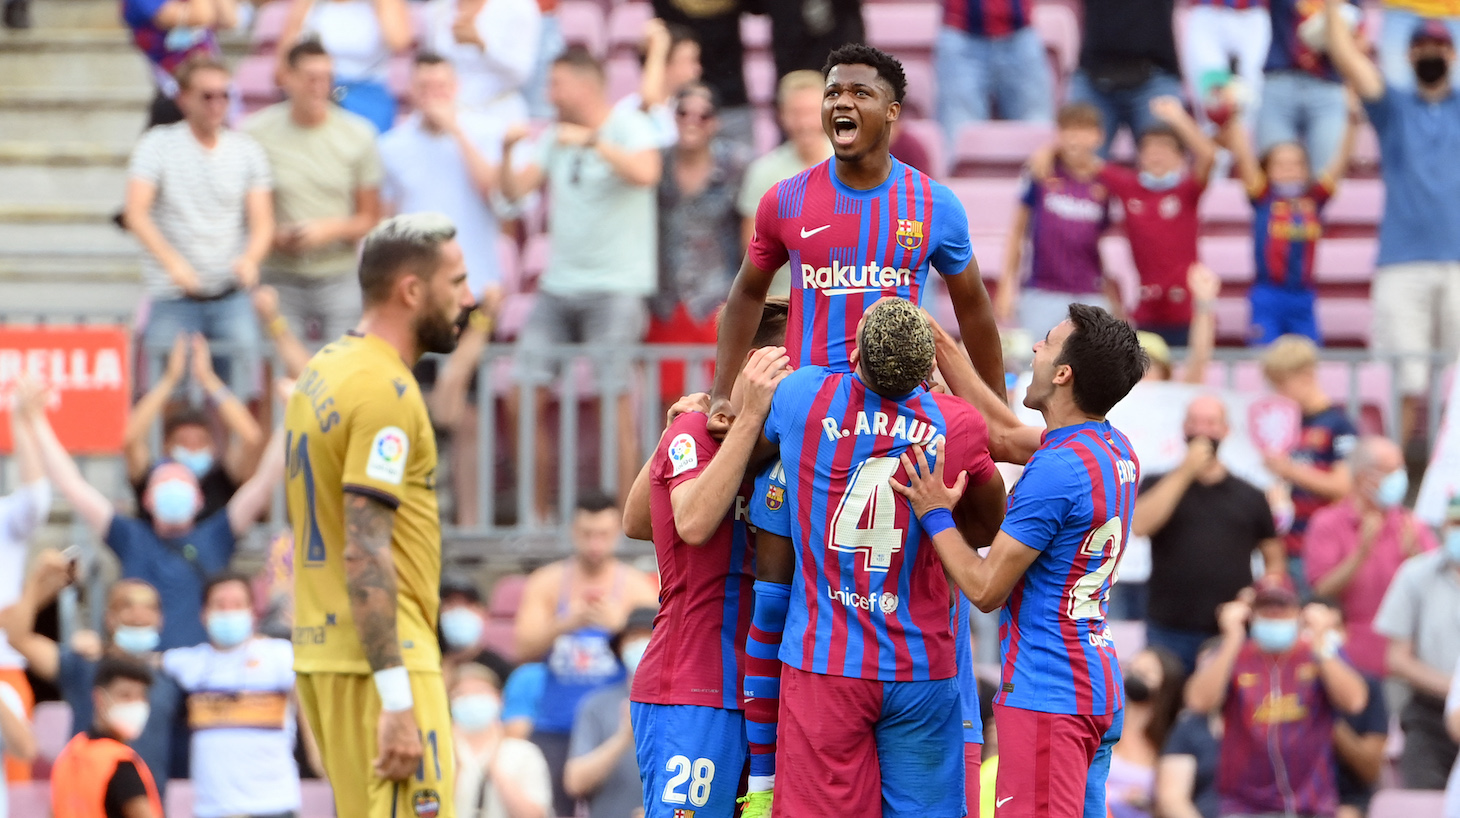 Barcelona's Spanish midfielder Ansu Fati (TOP) celebrates scoring his team's third goal during the Spanish League football match between FC Barcelona and Levante UD at the Camp Nou stadium in Barcelona on September 26, 2021.